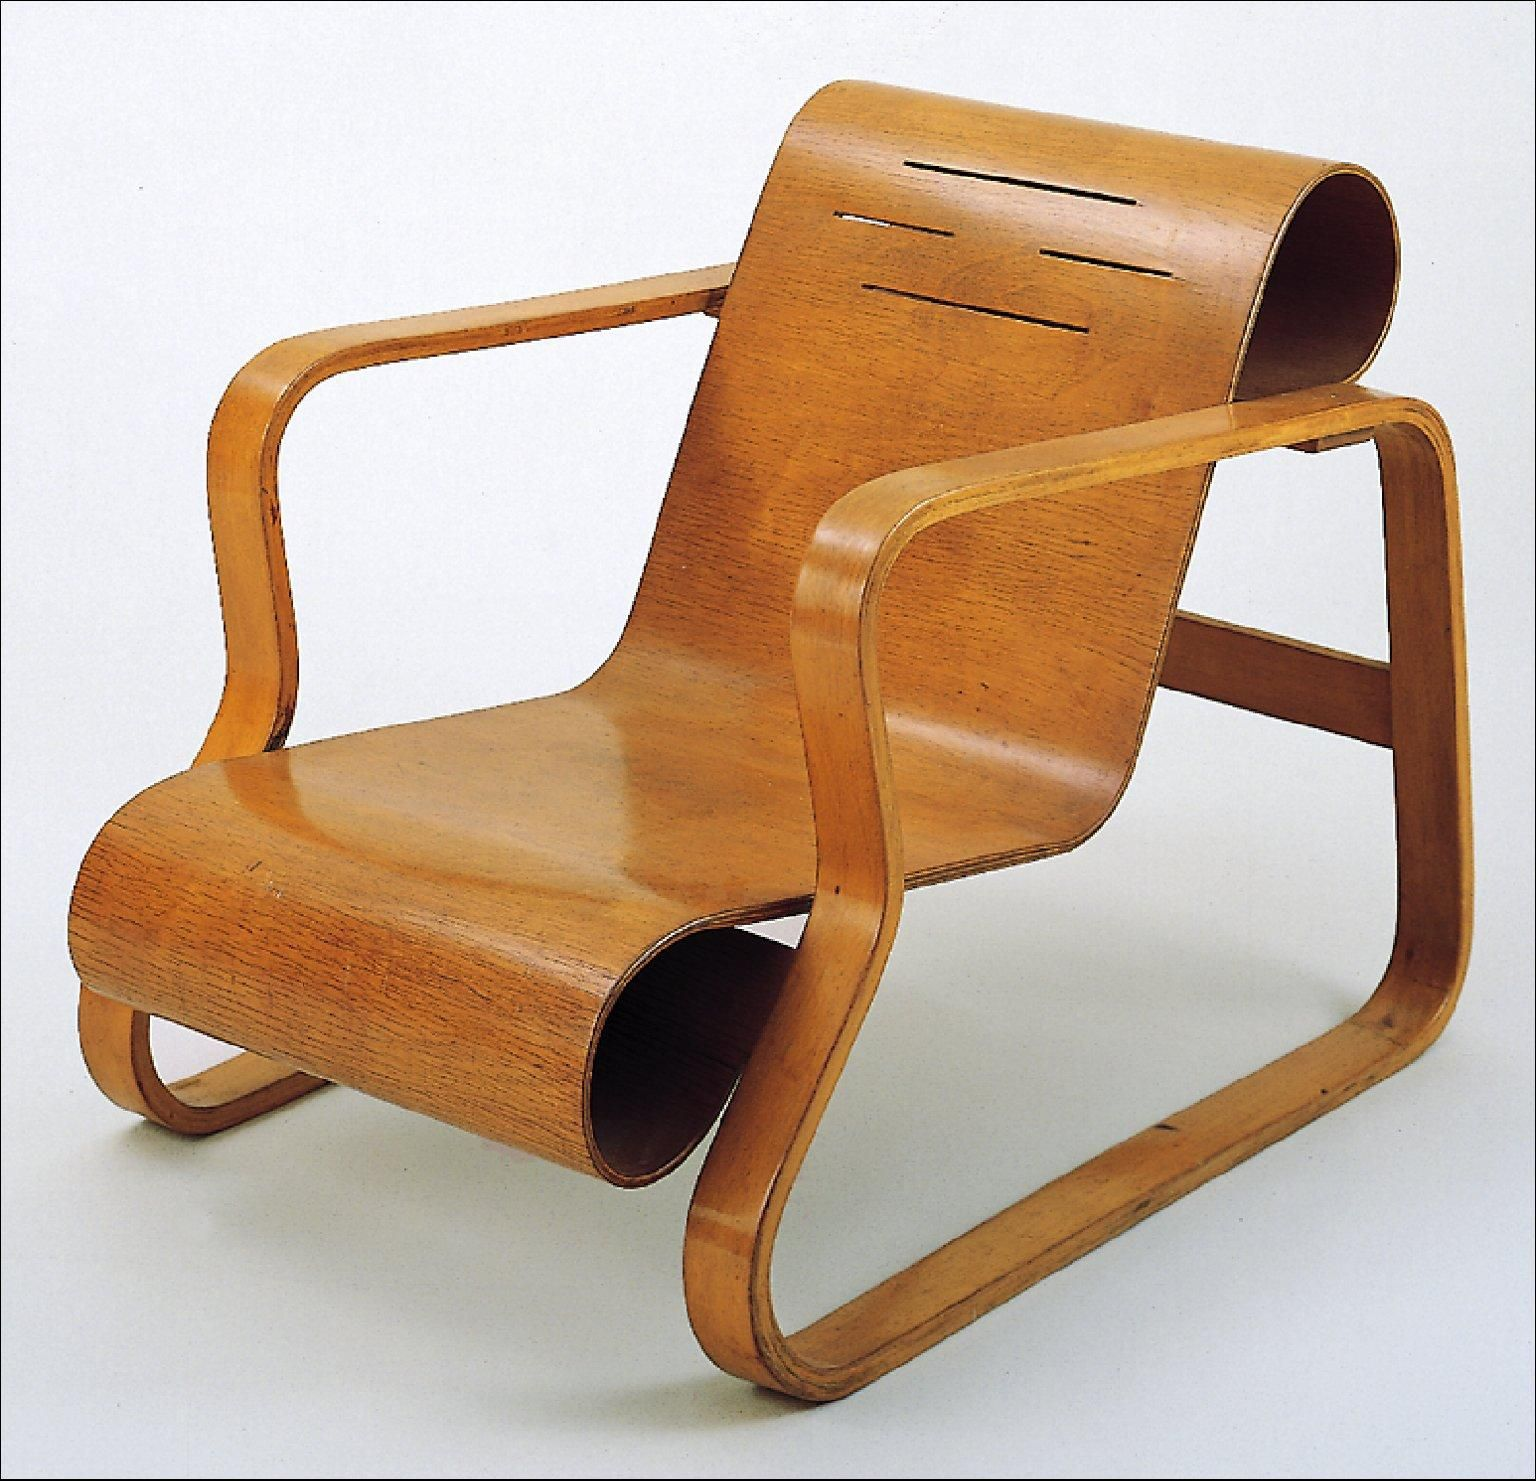 Aalto Chair Alvar Aalto Paimio Chair 1933 1930 Furniture Design